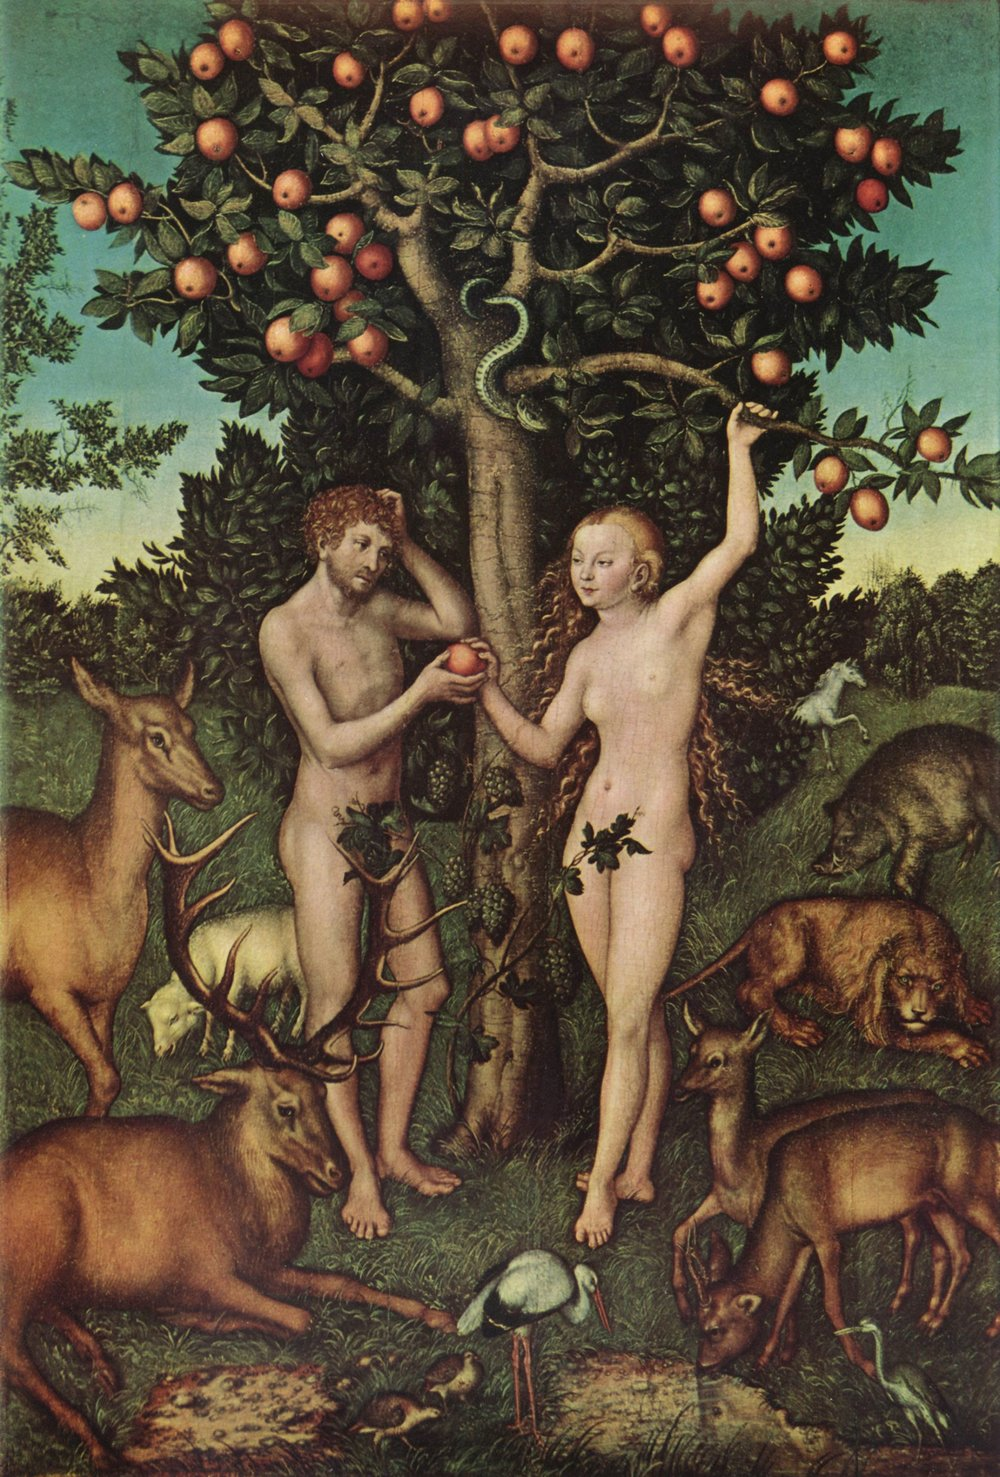 Lucas Cranach the Elder, Adam and Eve, 1526